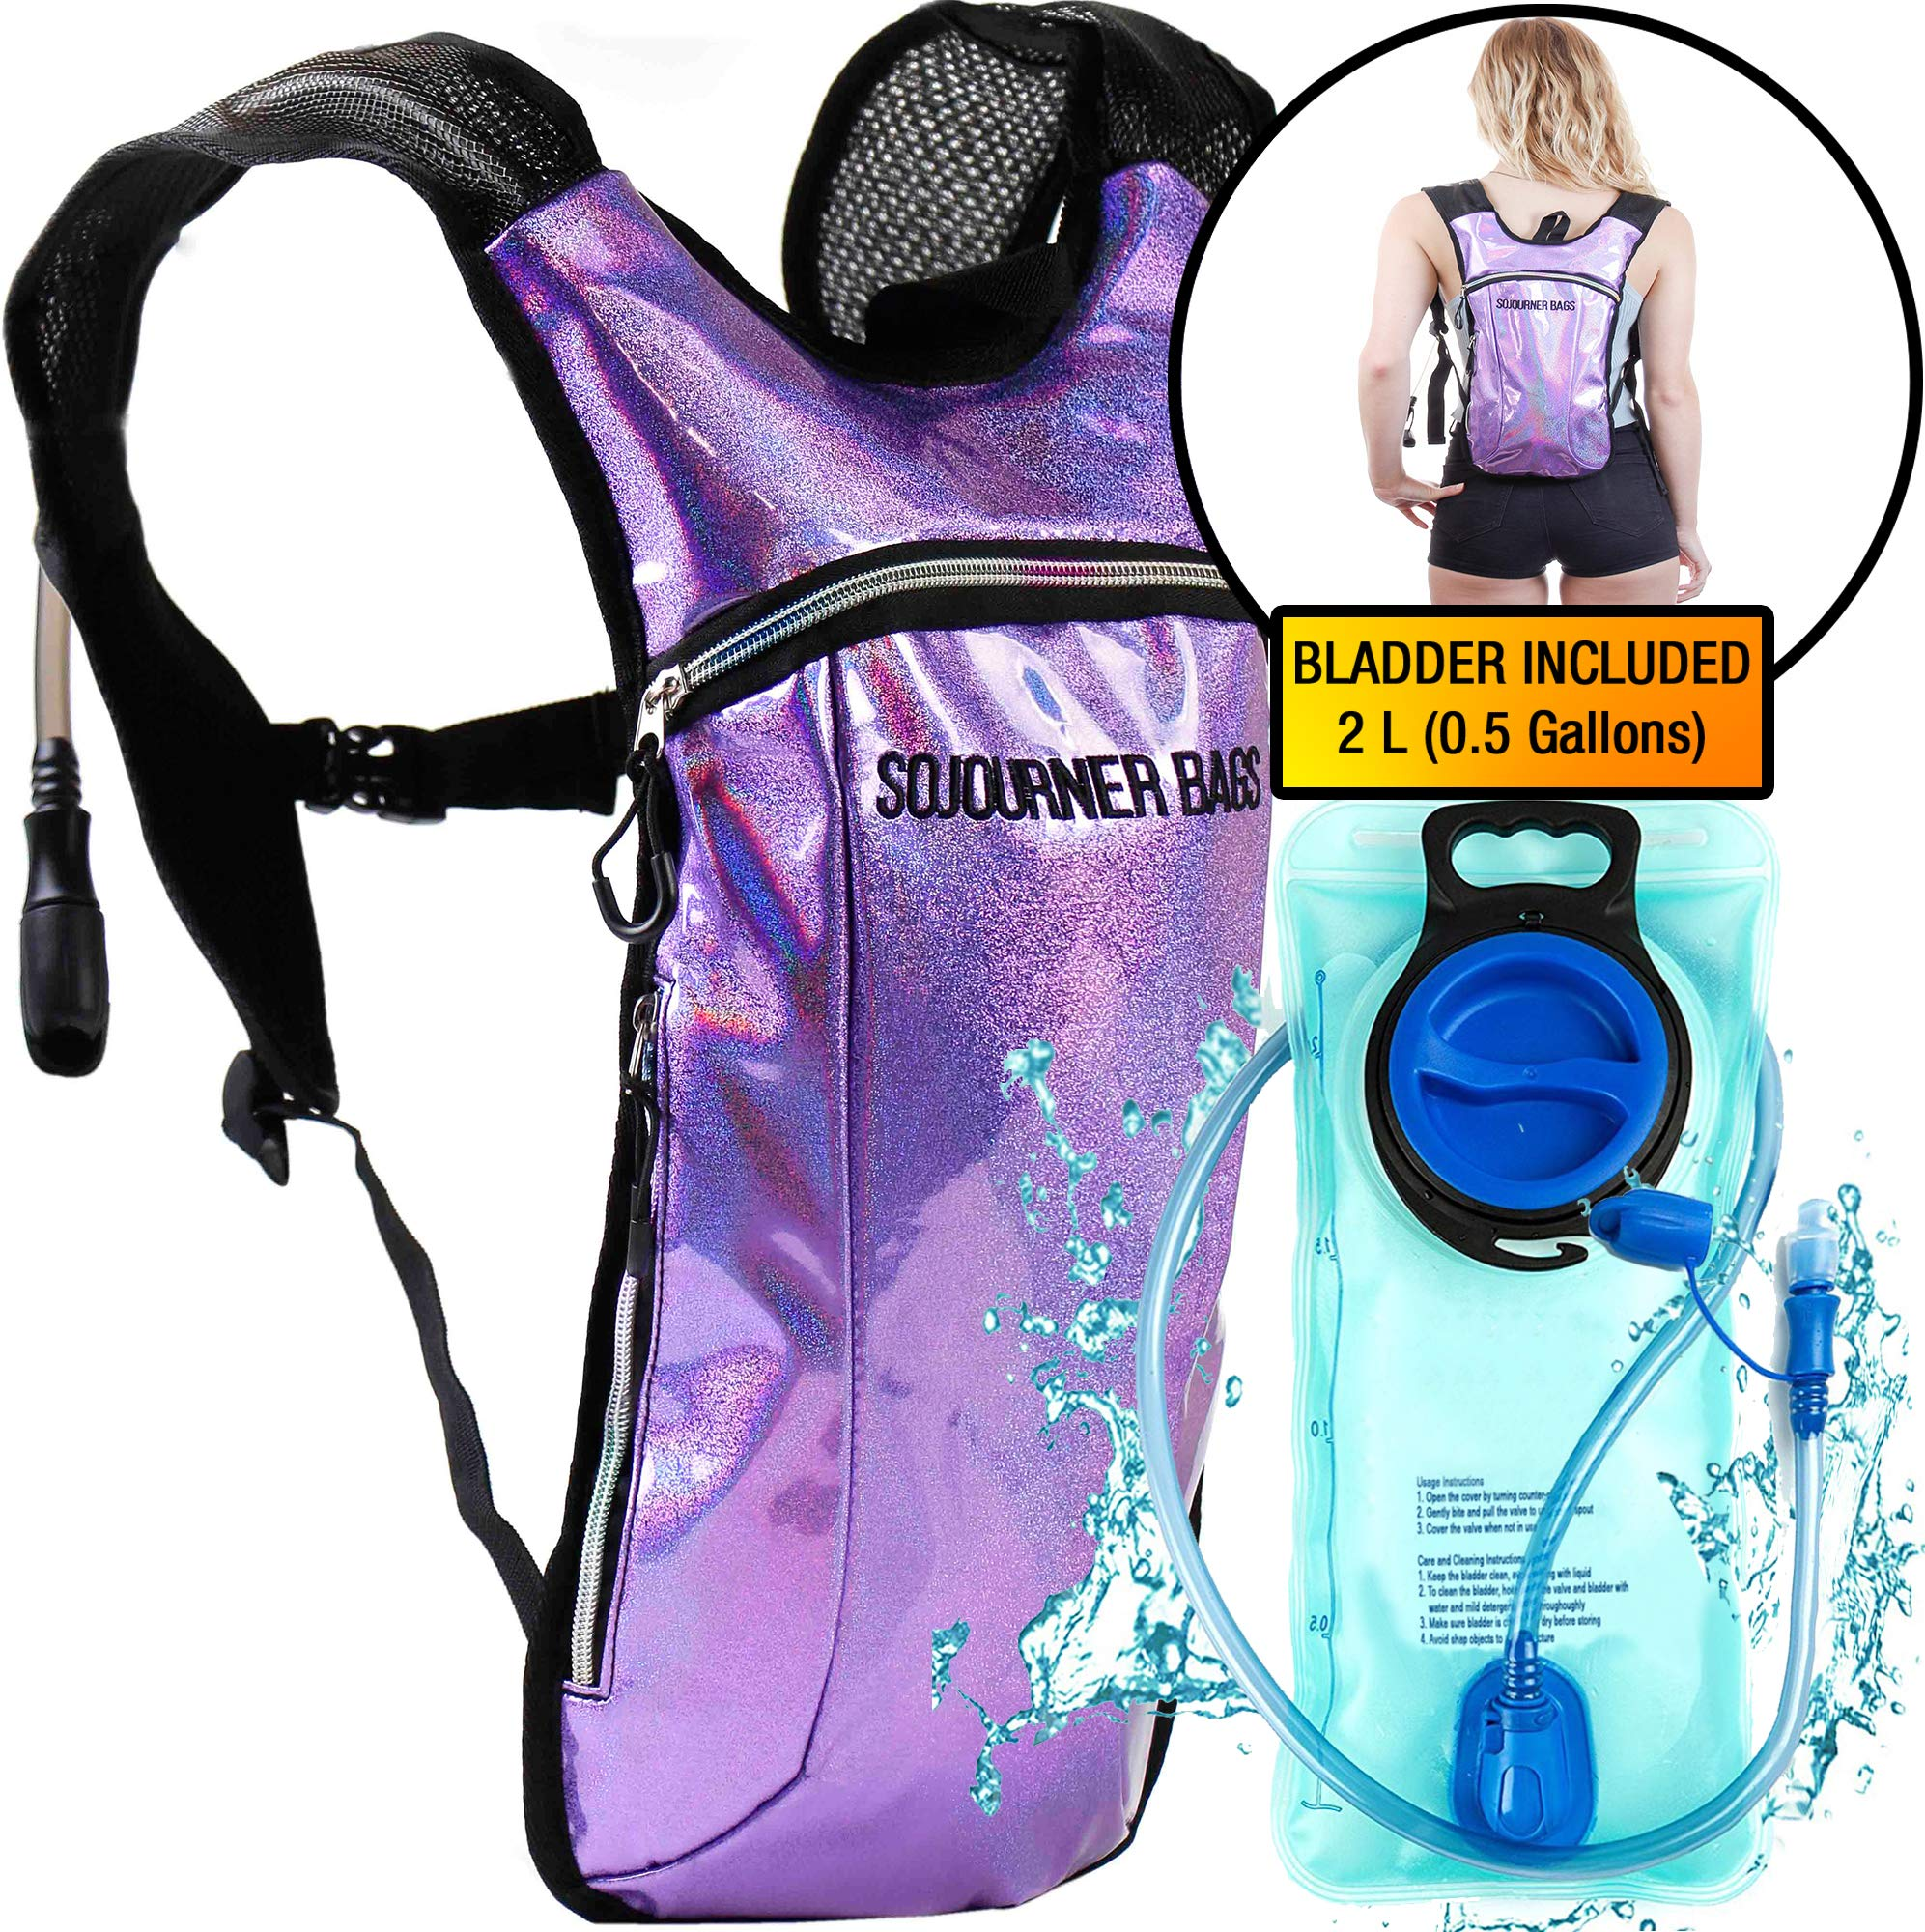 Sojourner Hydration Pack Backpack - 2L Water Bladder Included for Festivals, Raves, Hiking, Biking, Climbing, Running and More (Glitter - Purple)